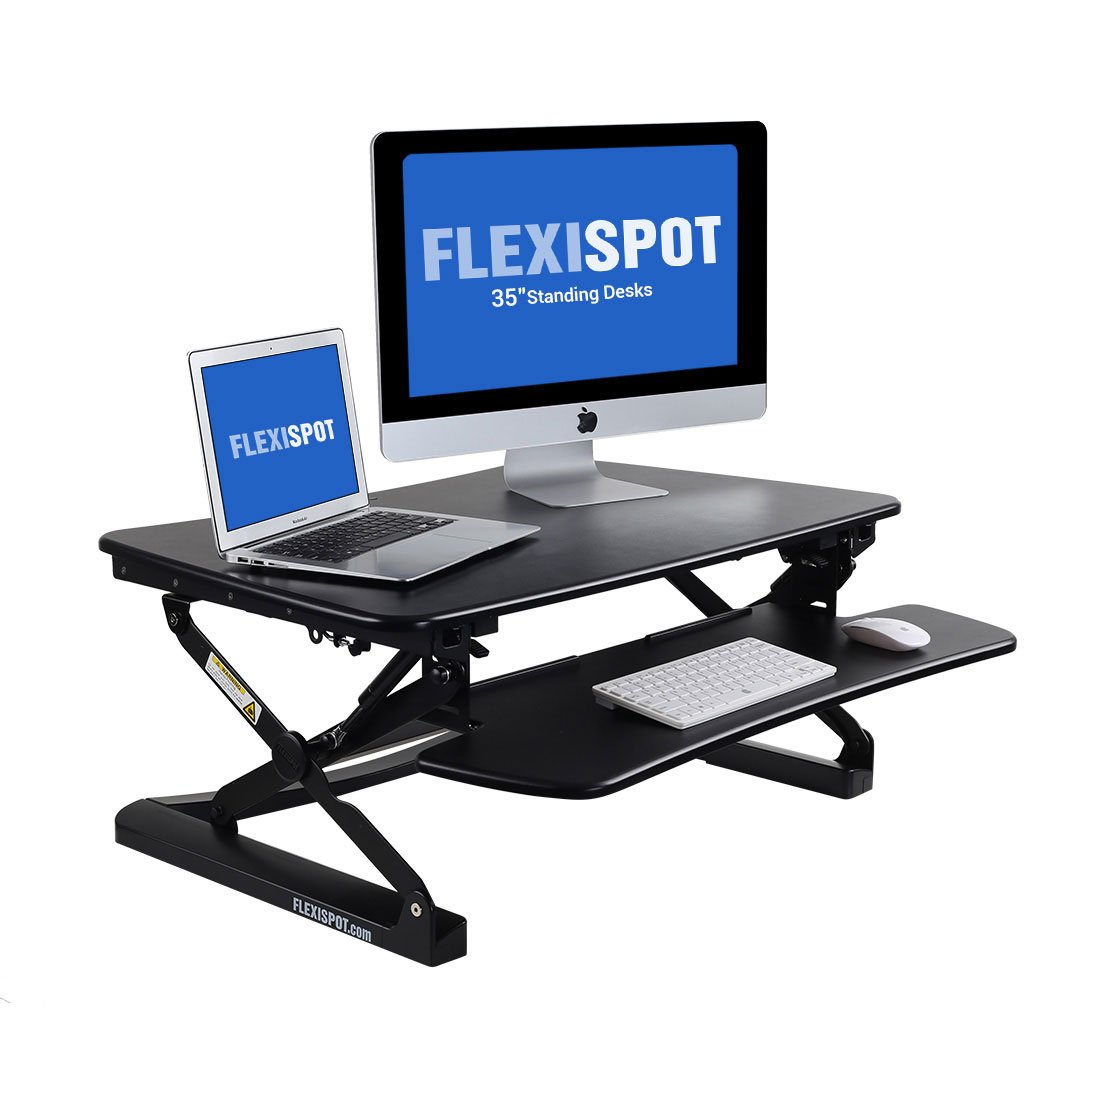 FlexiSpot M2B Standing Desk - 35'' wide platform Height Adjustable Stand up Desk Computer Riser with Removable Keyboard Tray (Medium size Black)